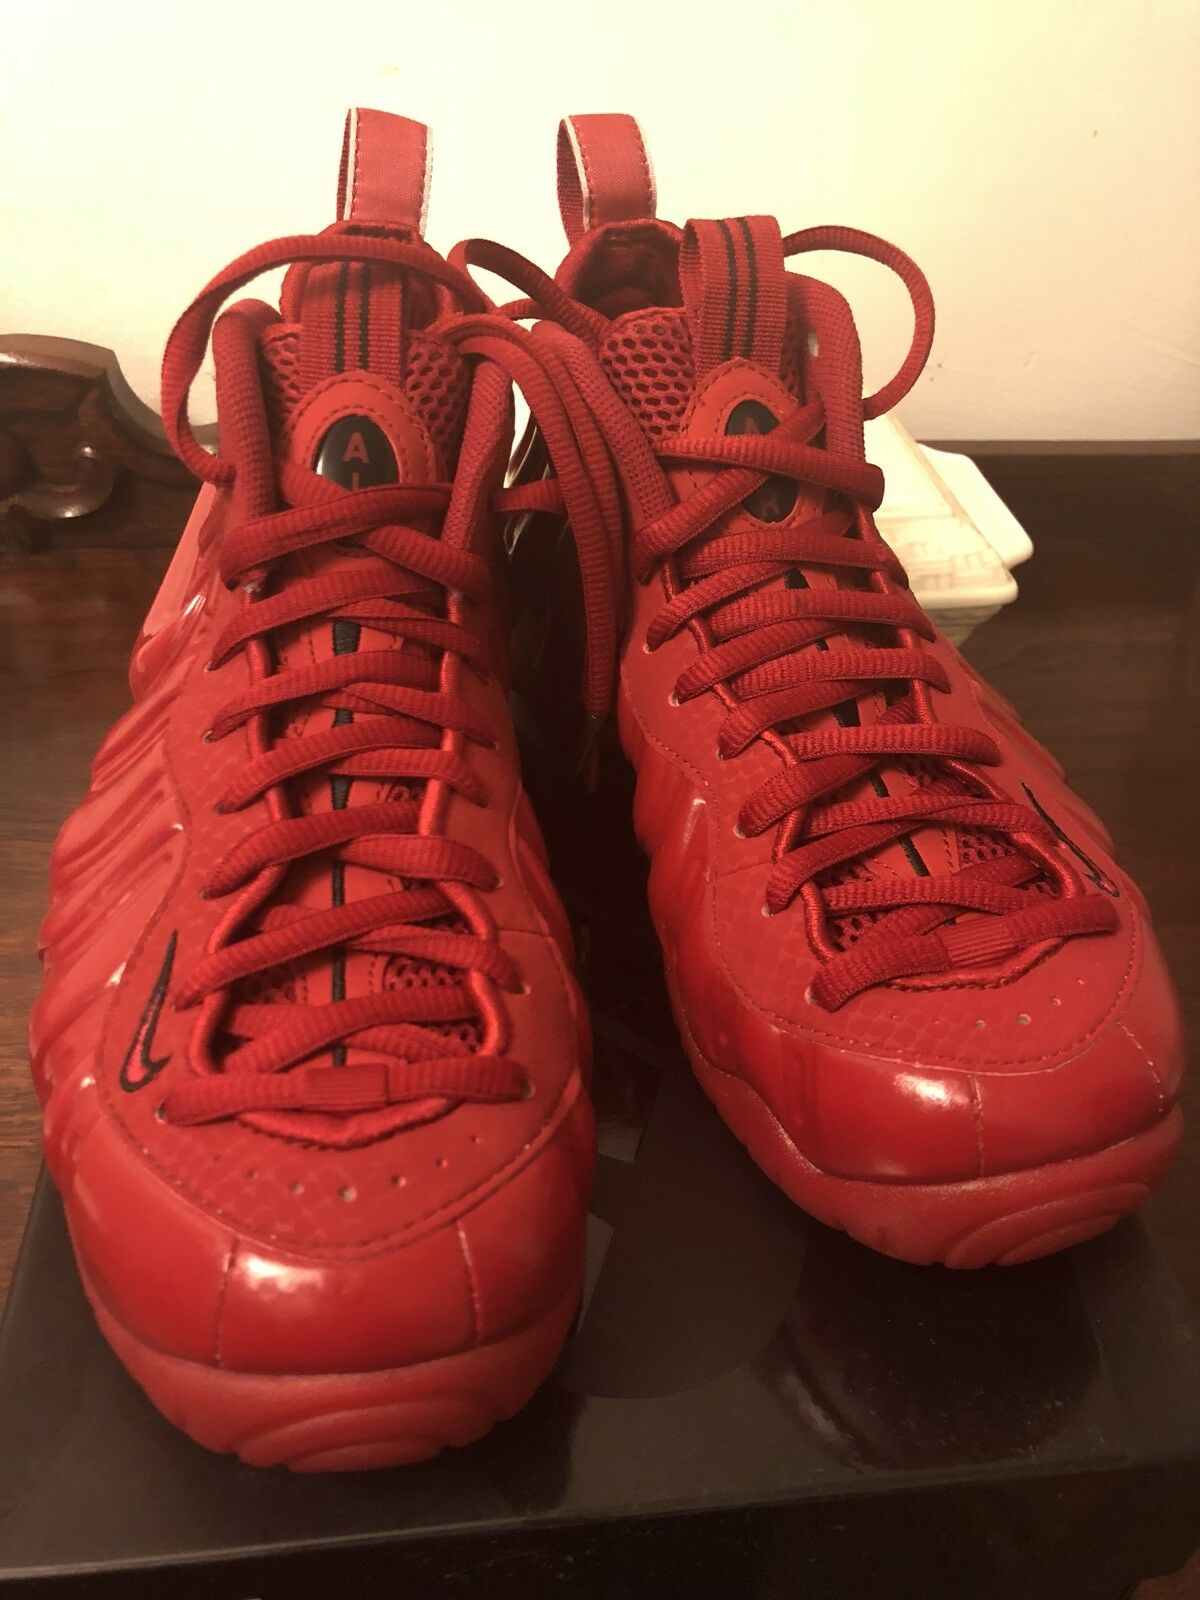 Nike Air Foamposite Pro Red October Yeezy Solar Red He Got Game Bred 7